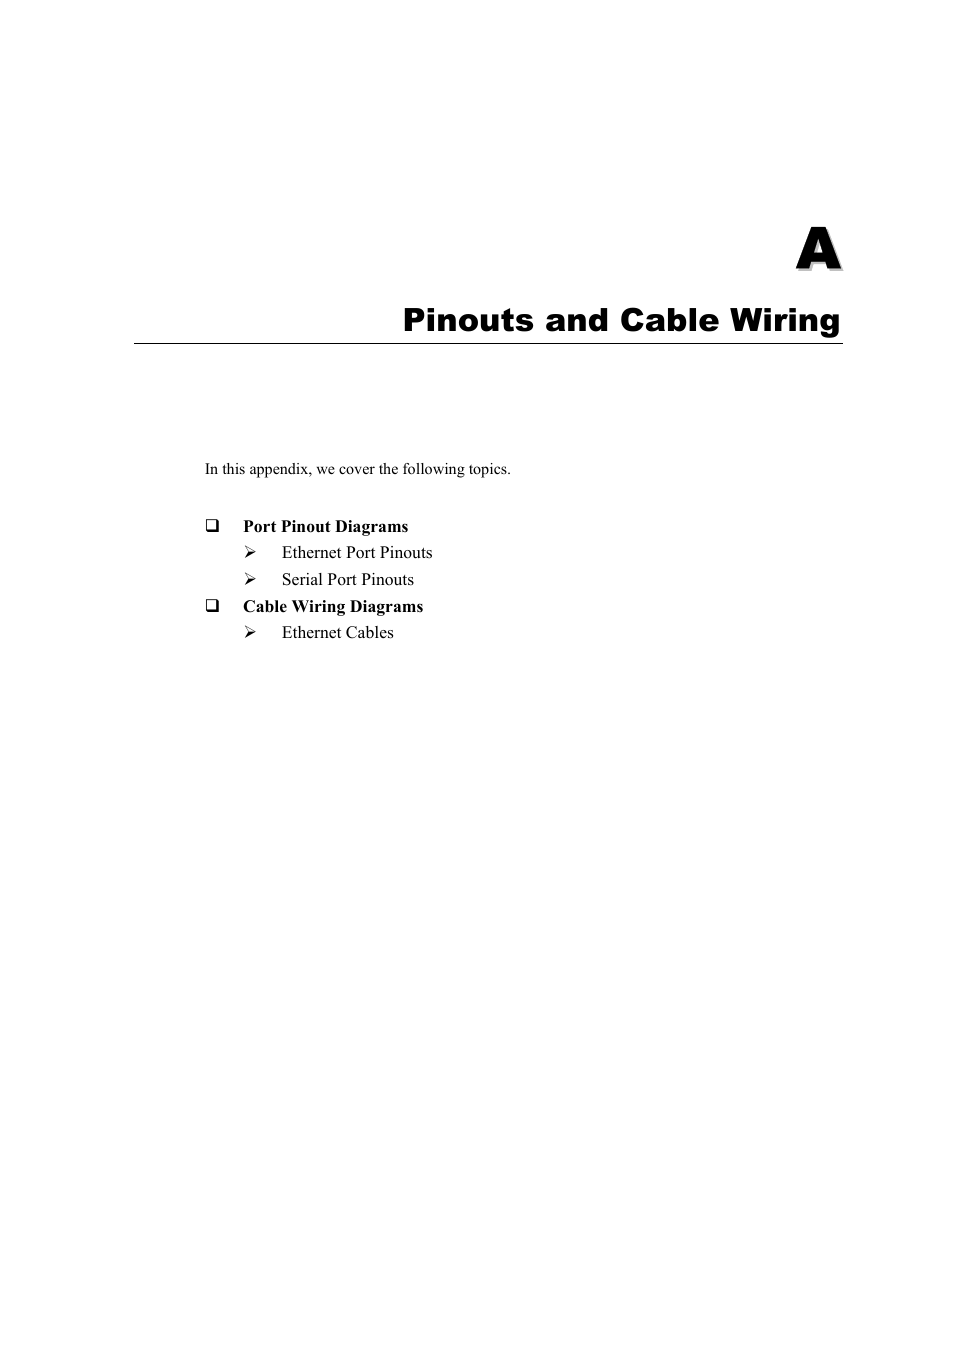 medium resolution of a pinouts and cable wiring appendix a pinouts and cable wiring moxa technologies nport 5110 series user manual page 86 101